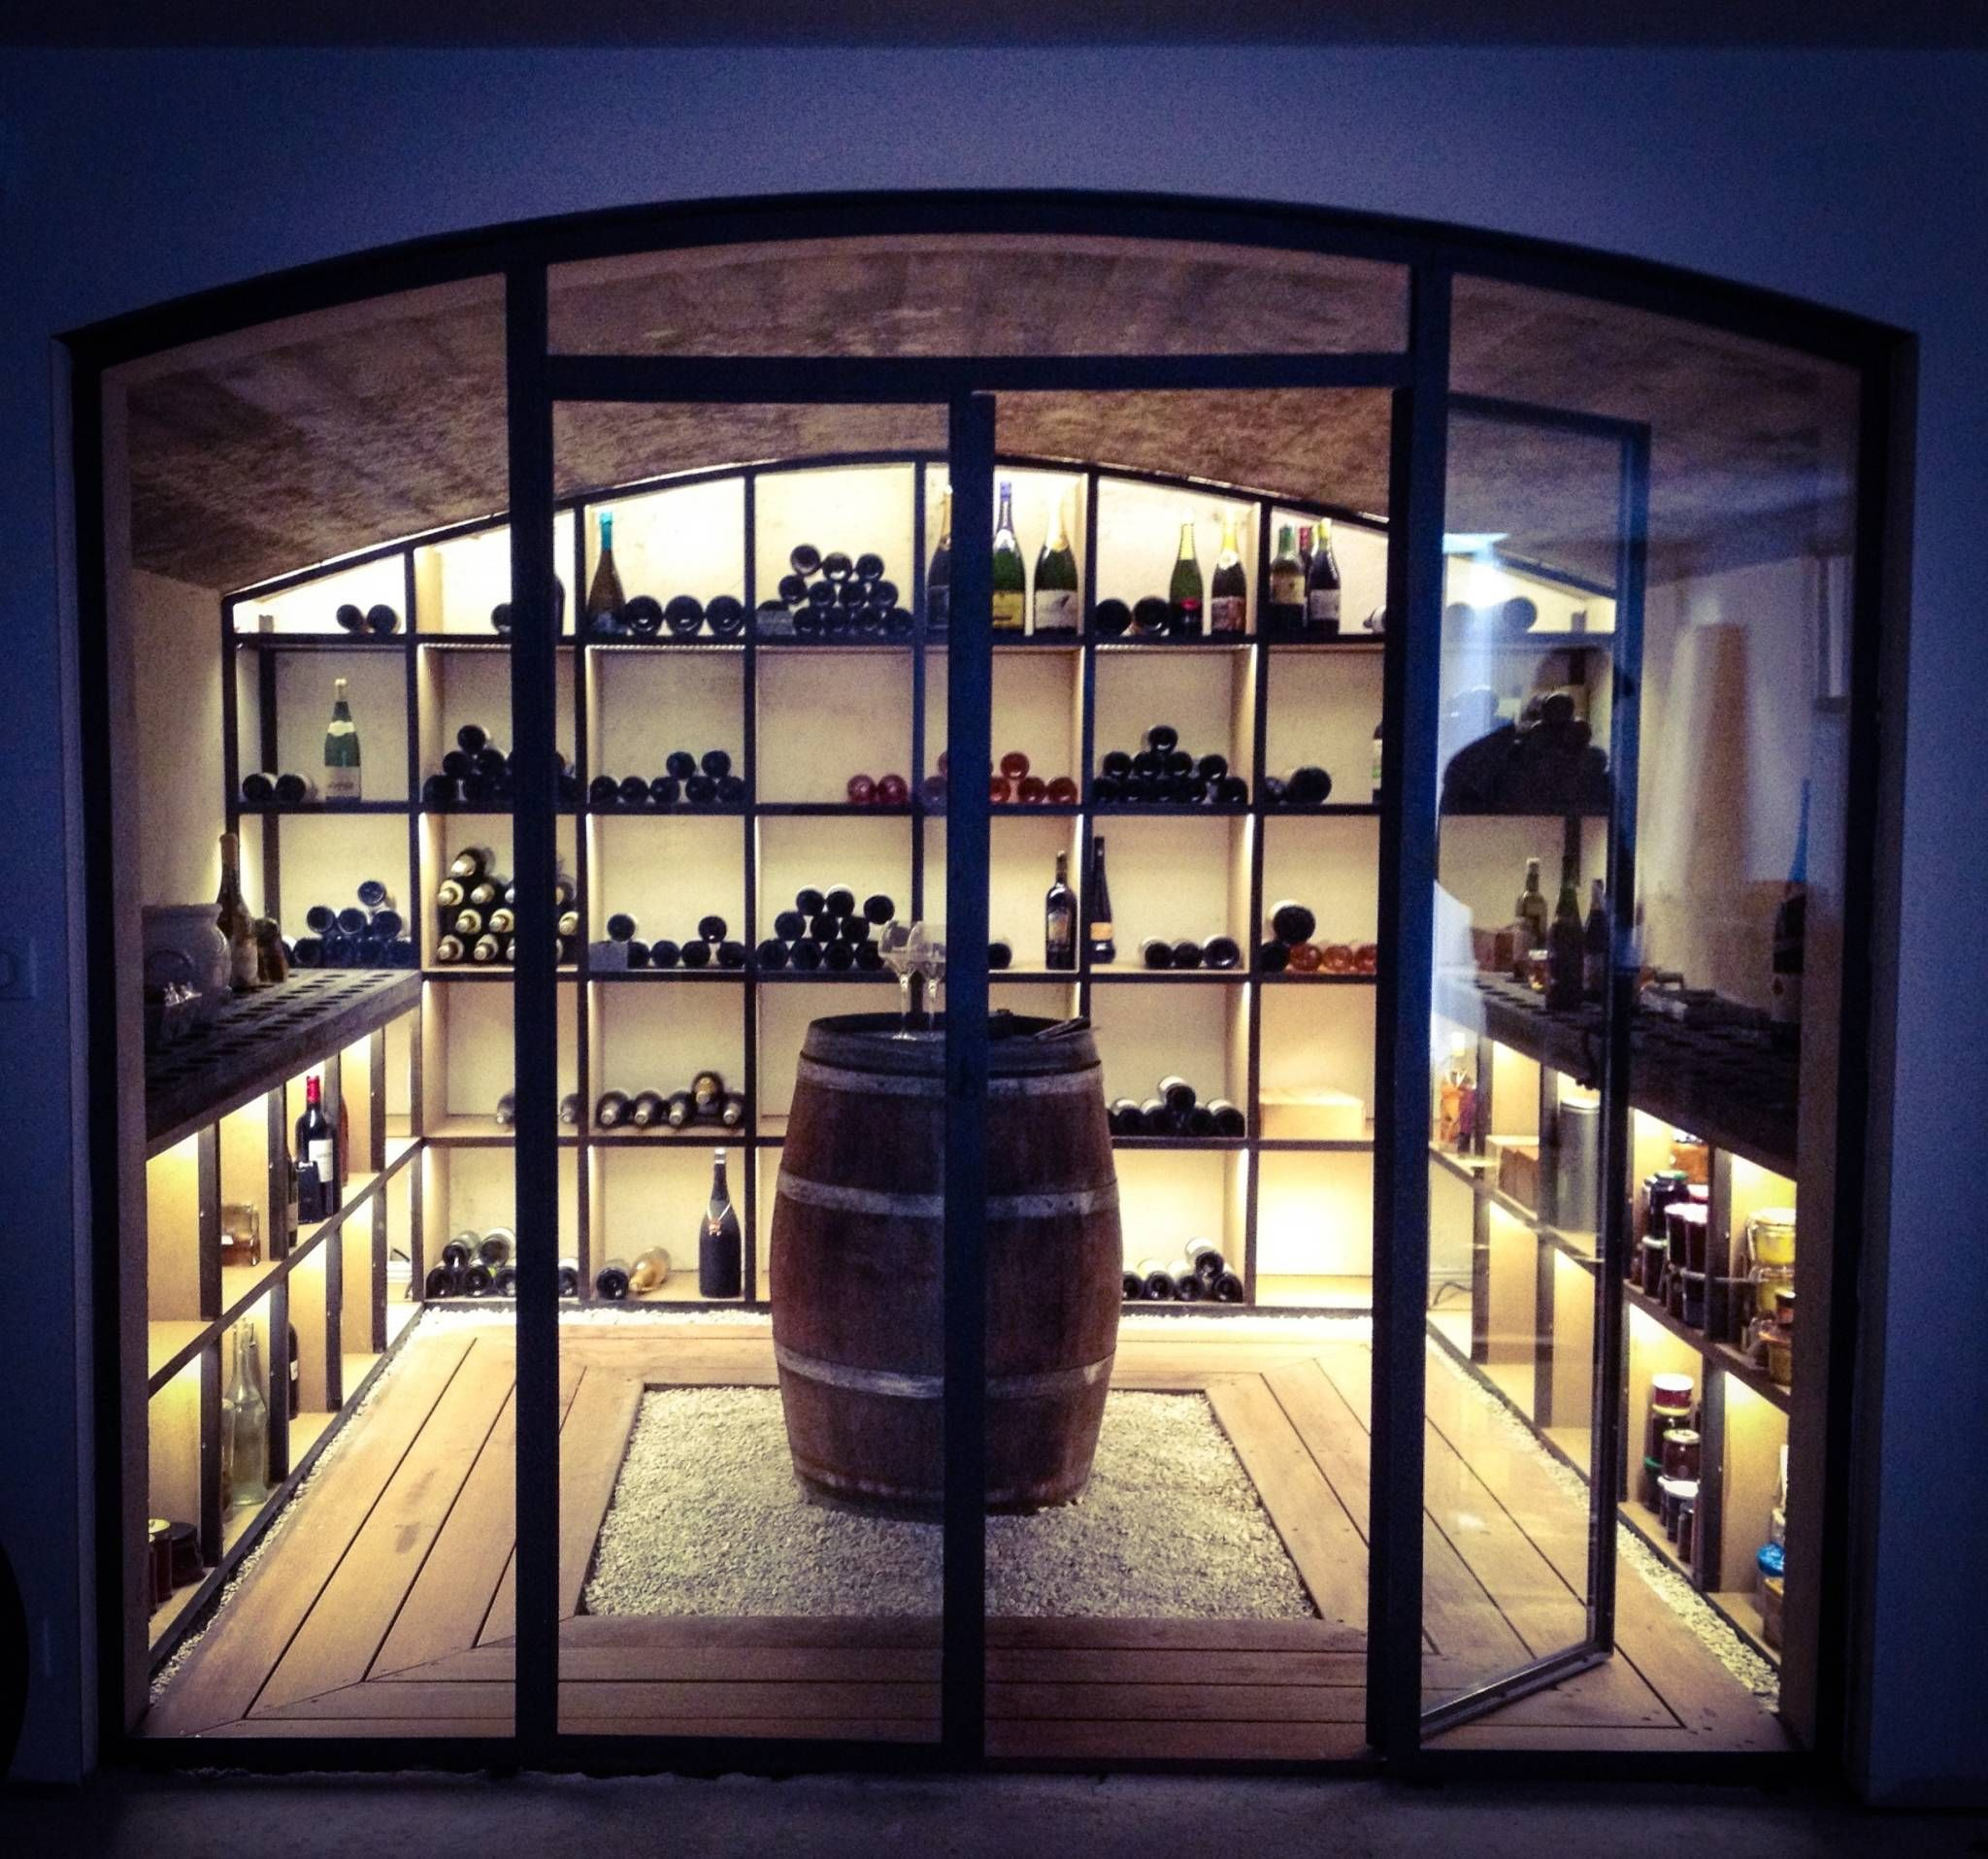 Cave a vin cave vin de style par de design en 2019 in vino veritas home wine cellars - Amenagement cave a vin maison ...